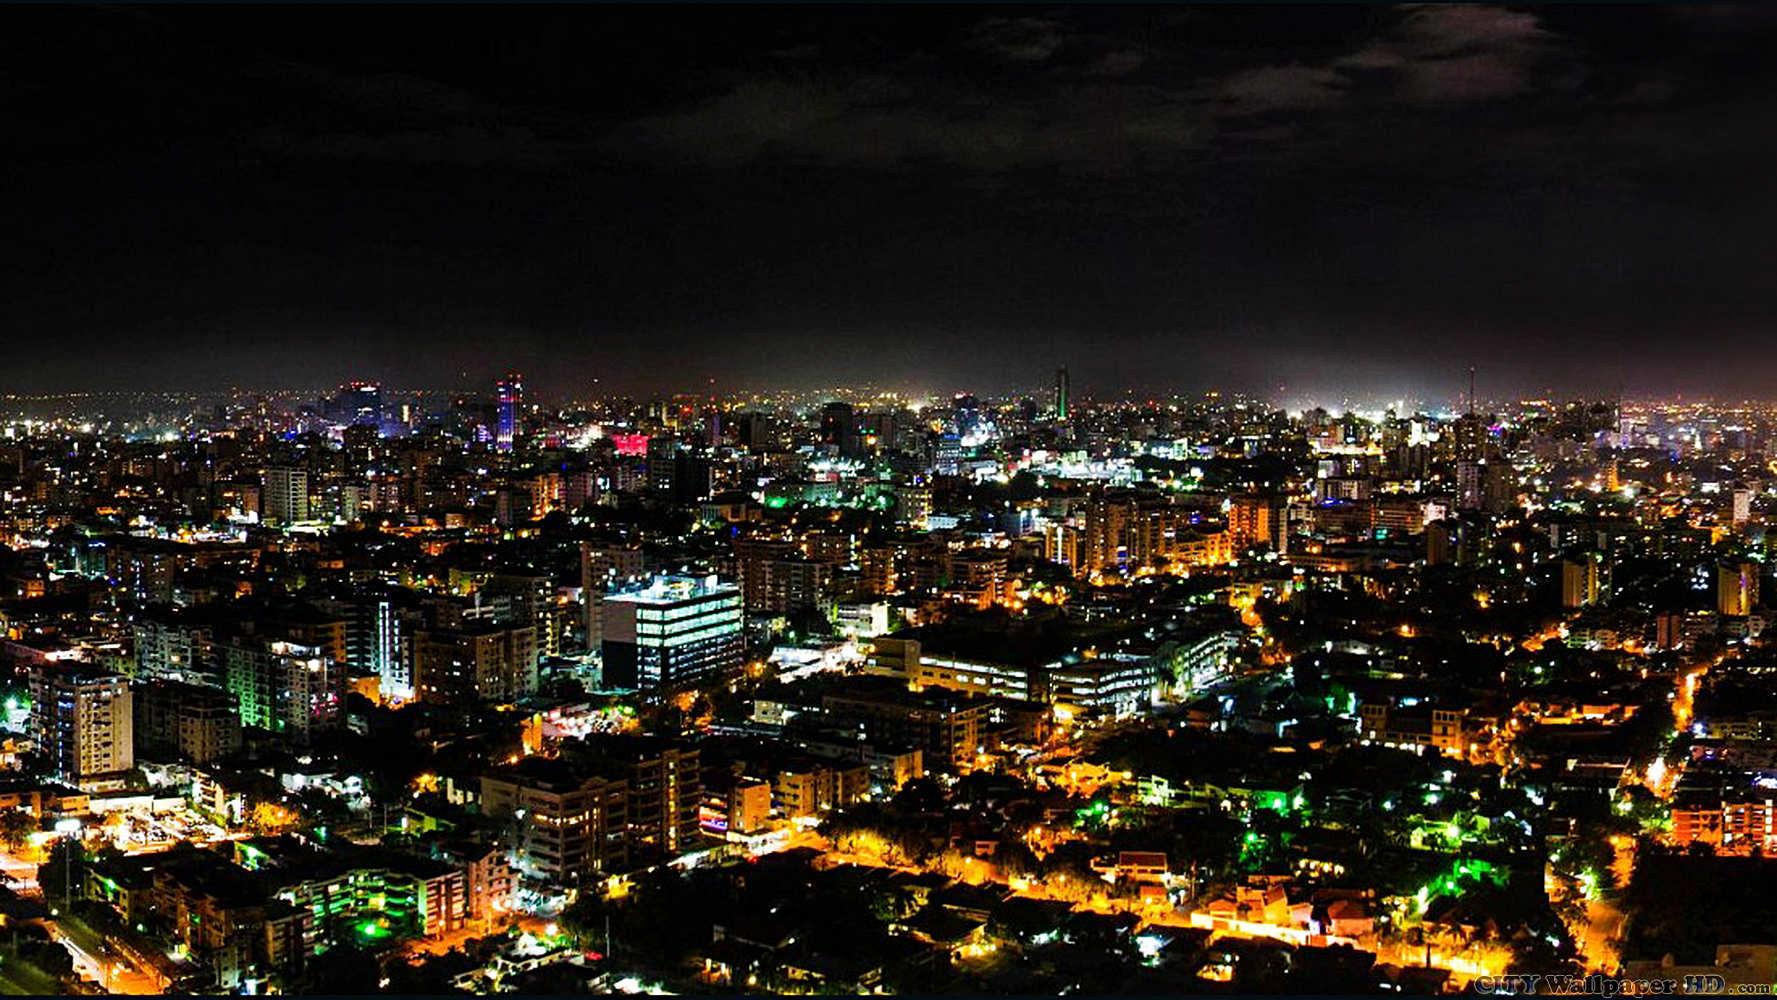 Night in Santo Domingo. Wide image of cities and countries for the